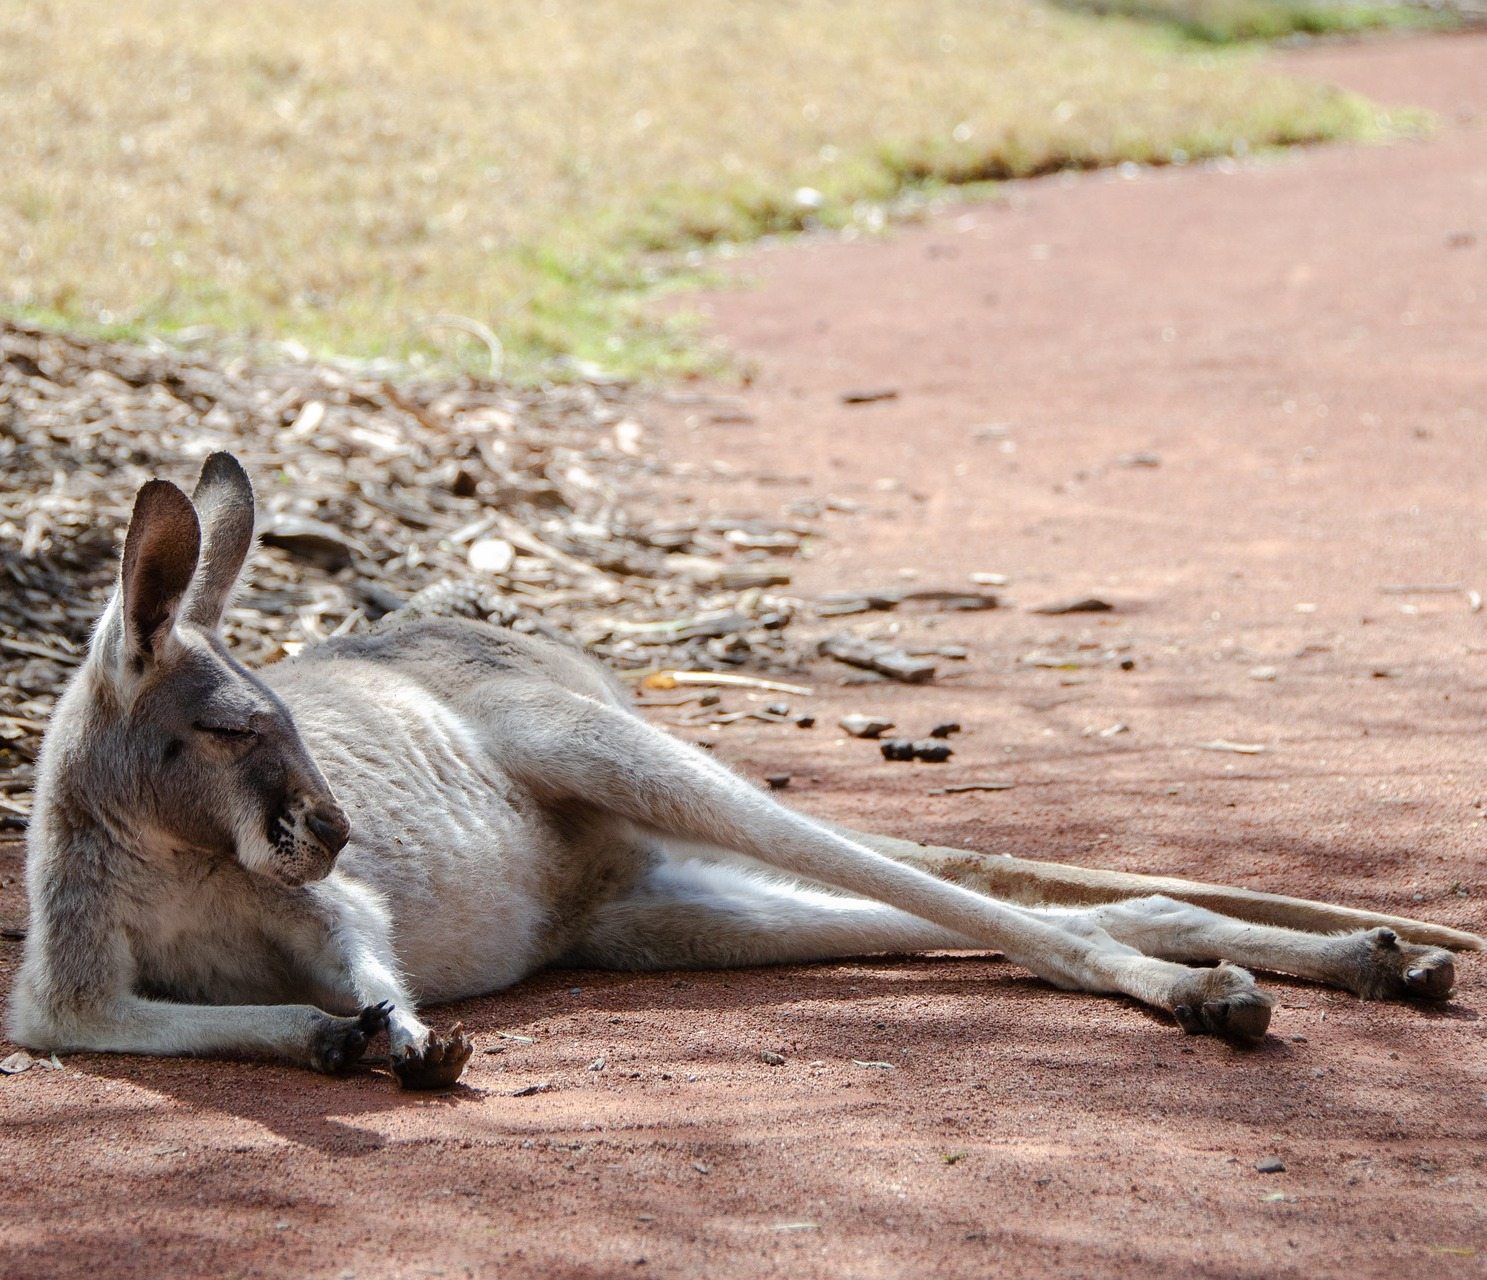 A kangaroo taking a nap.